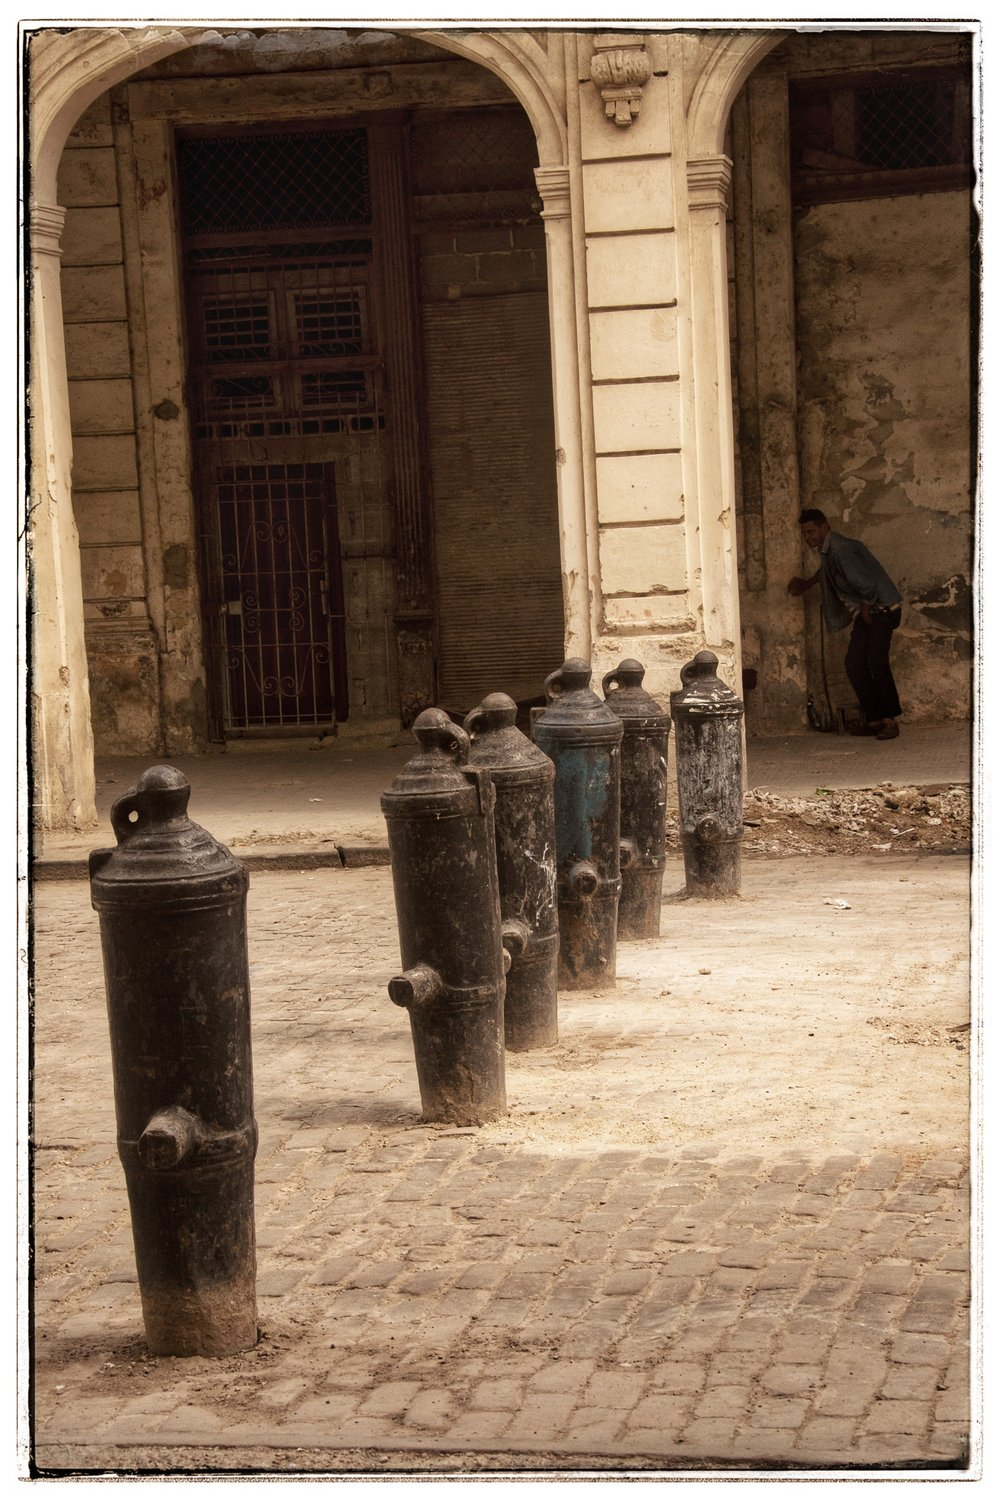 They use old canons as street barriers.